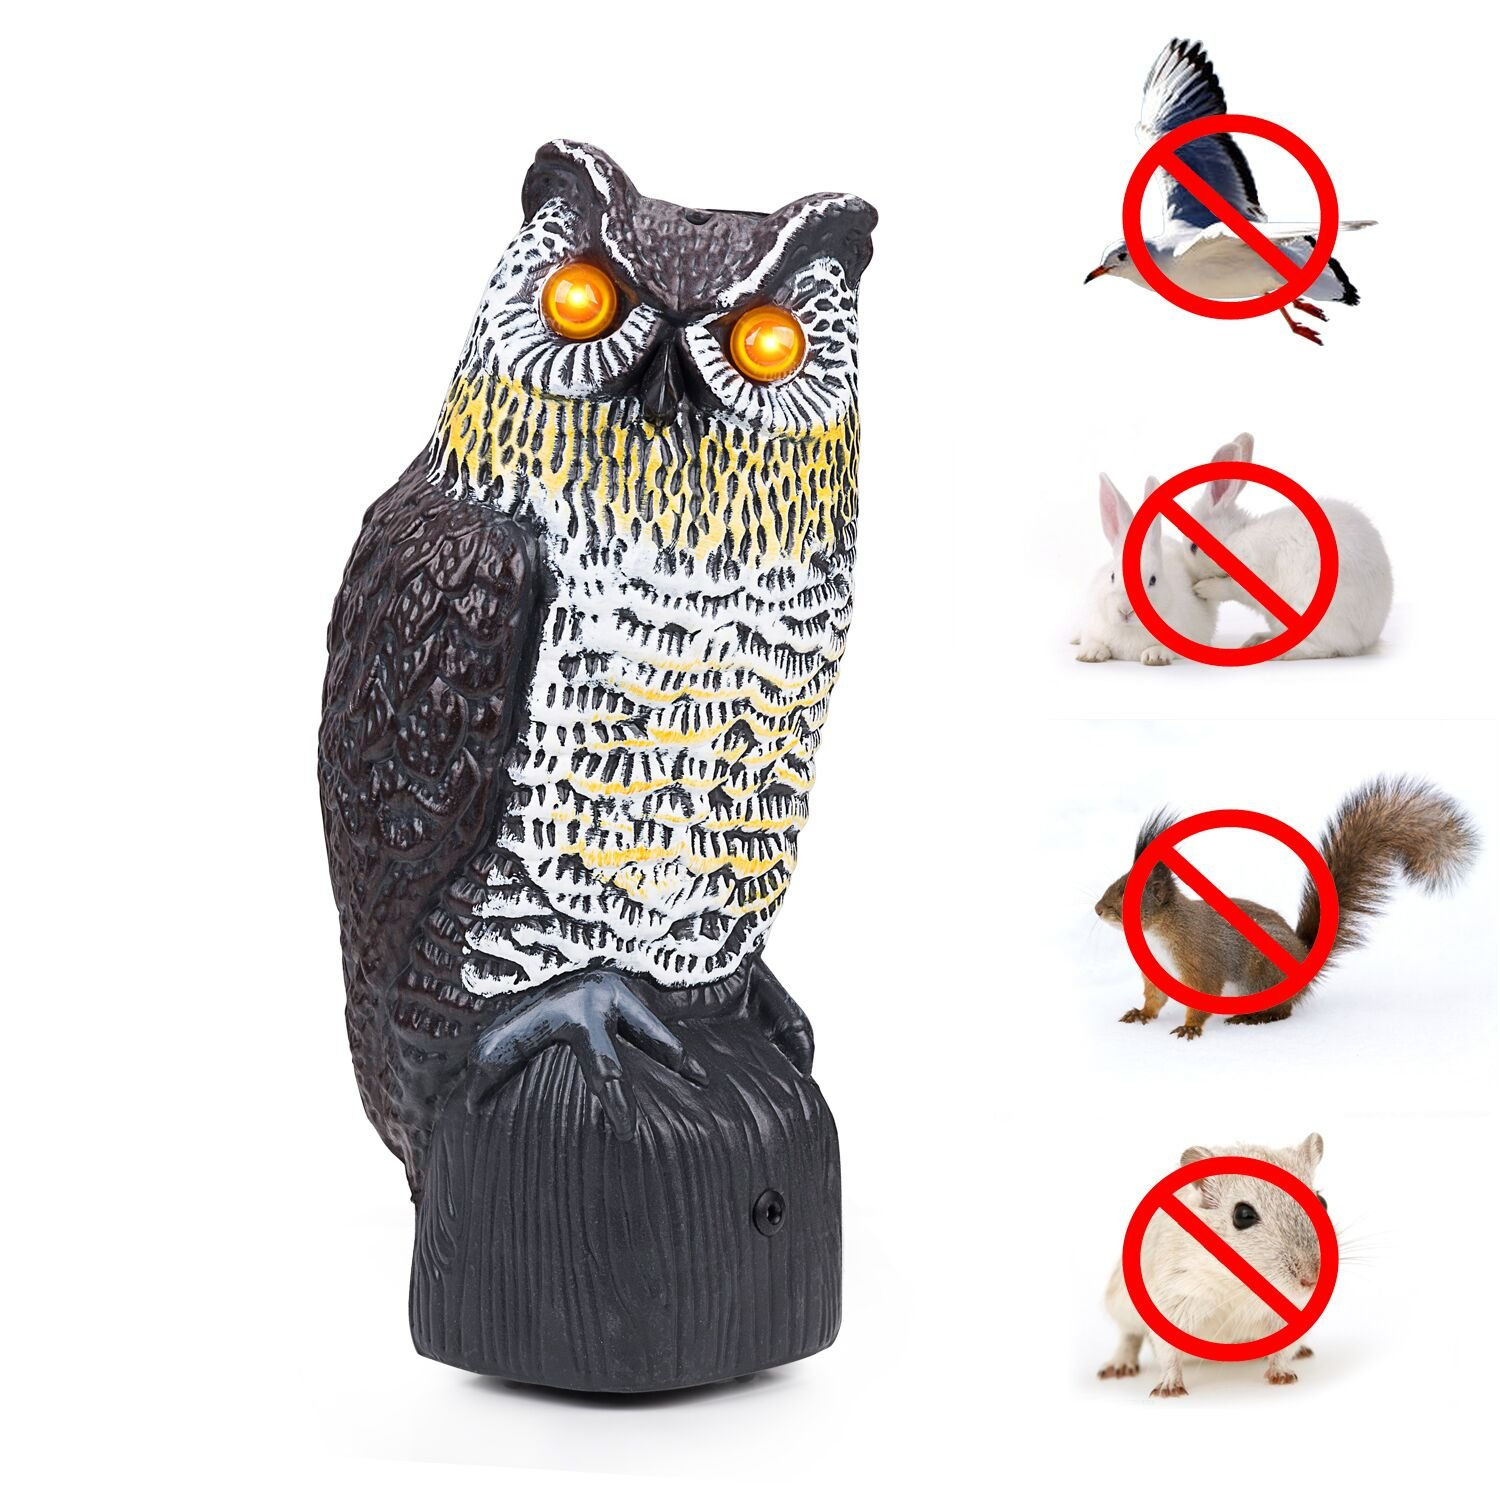 TBNEVG Garden Scarecrow Owl Decoy with Flashing Eyes and Scary Sound Pest Repellent – Motion Activated and Solar Powers Realistic Predator Scares Away and Repels All Pests; Birds, Squirrels, Rabbits